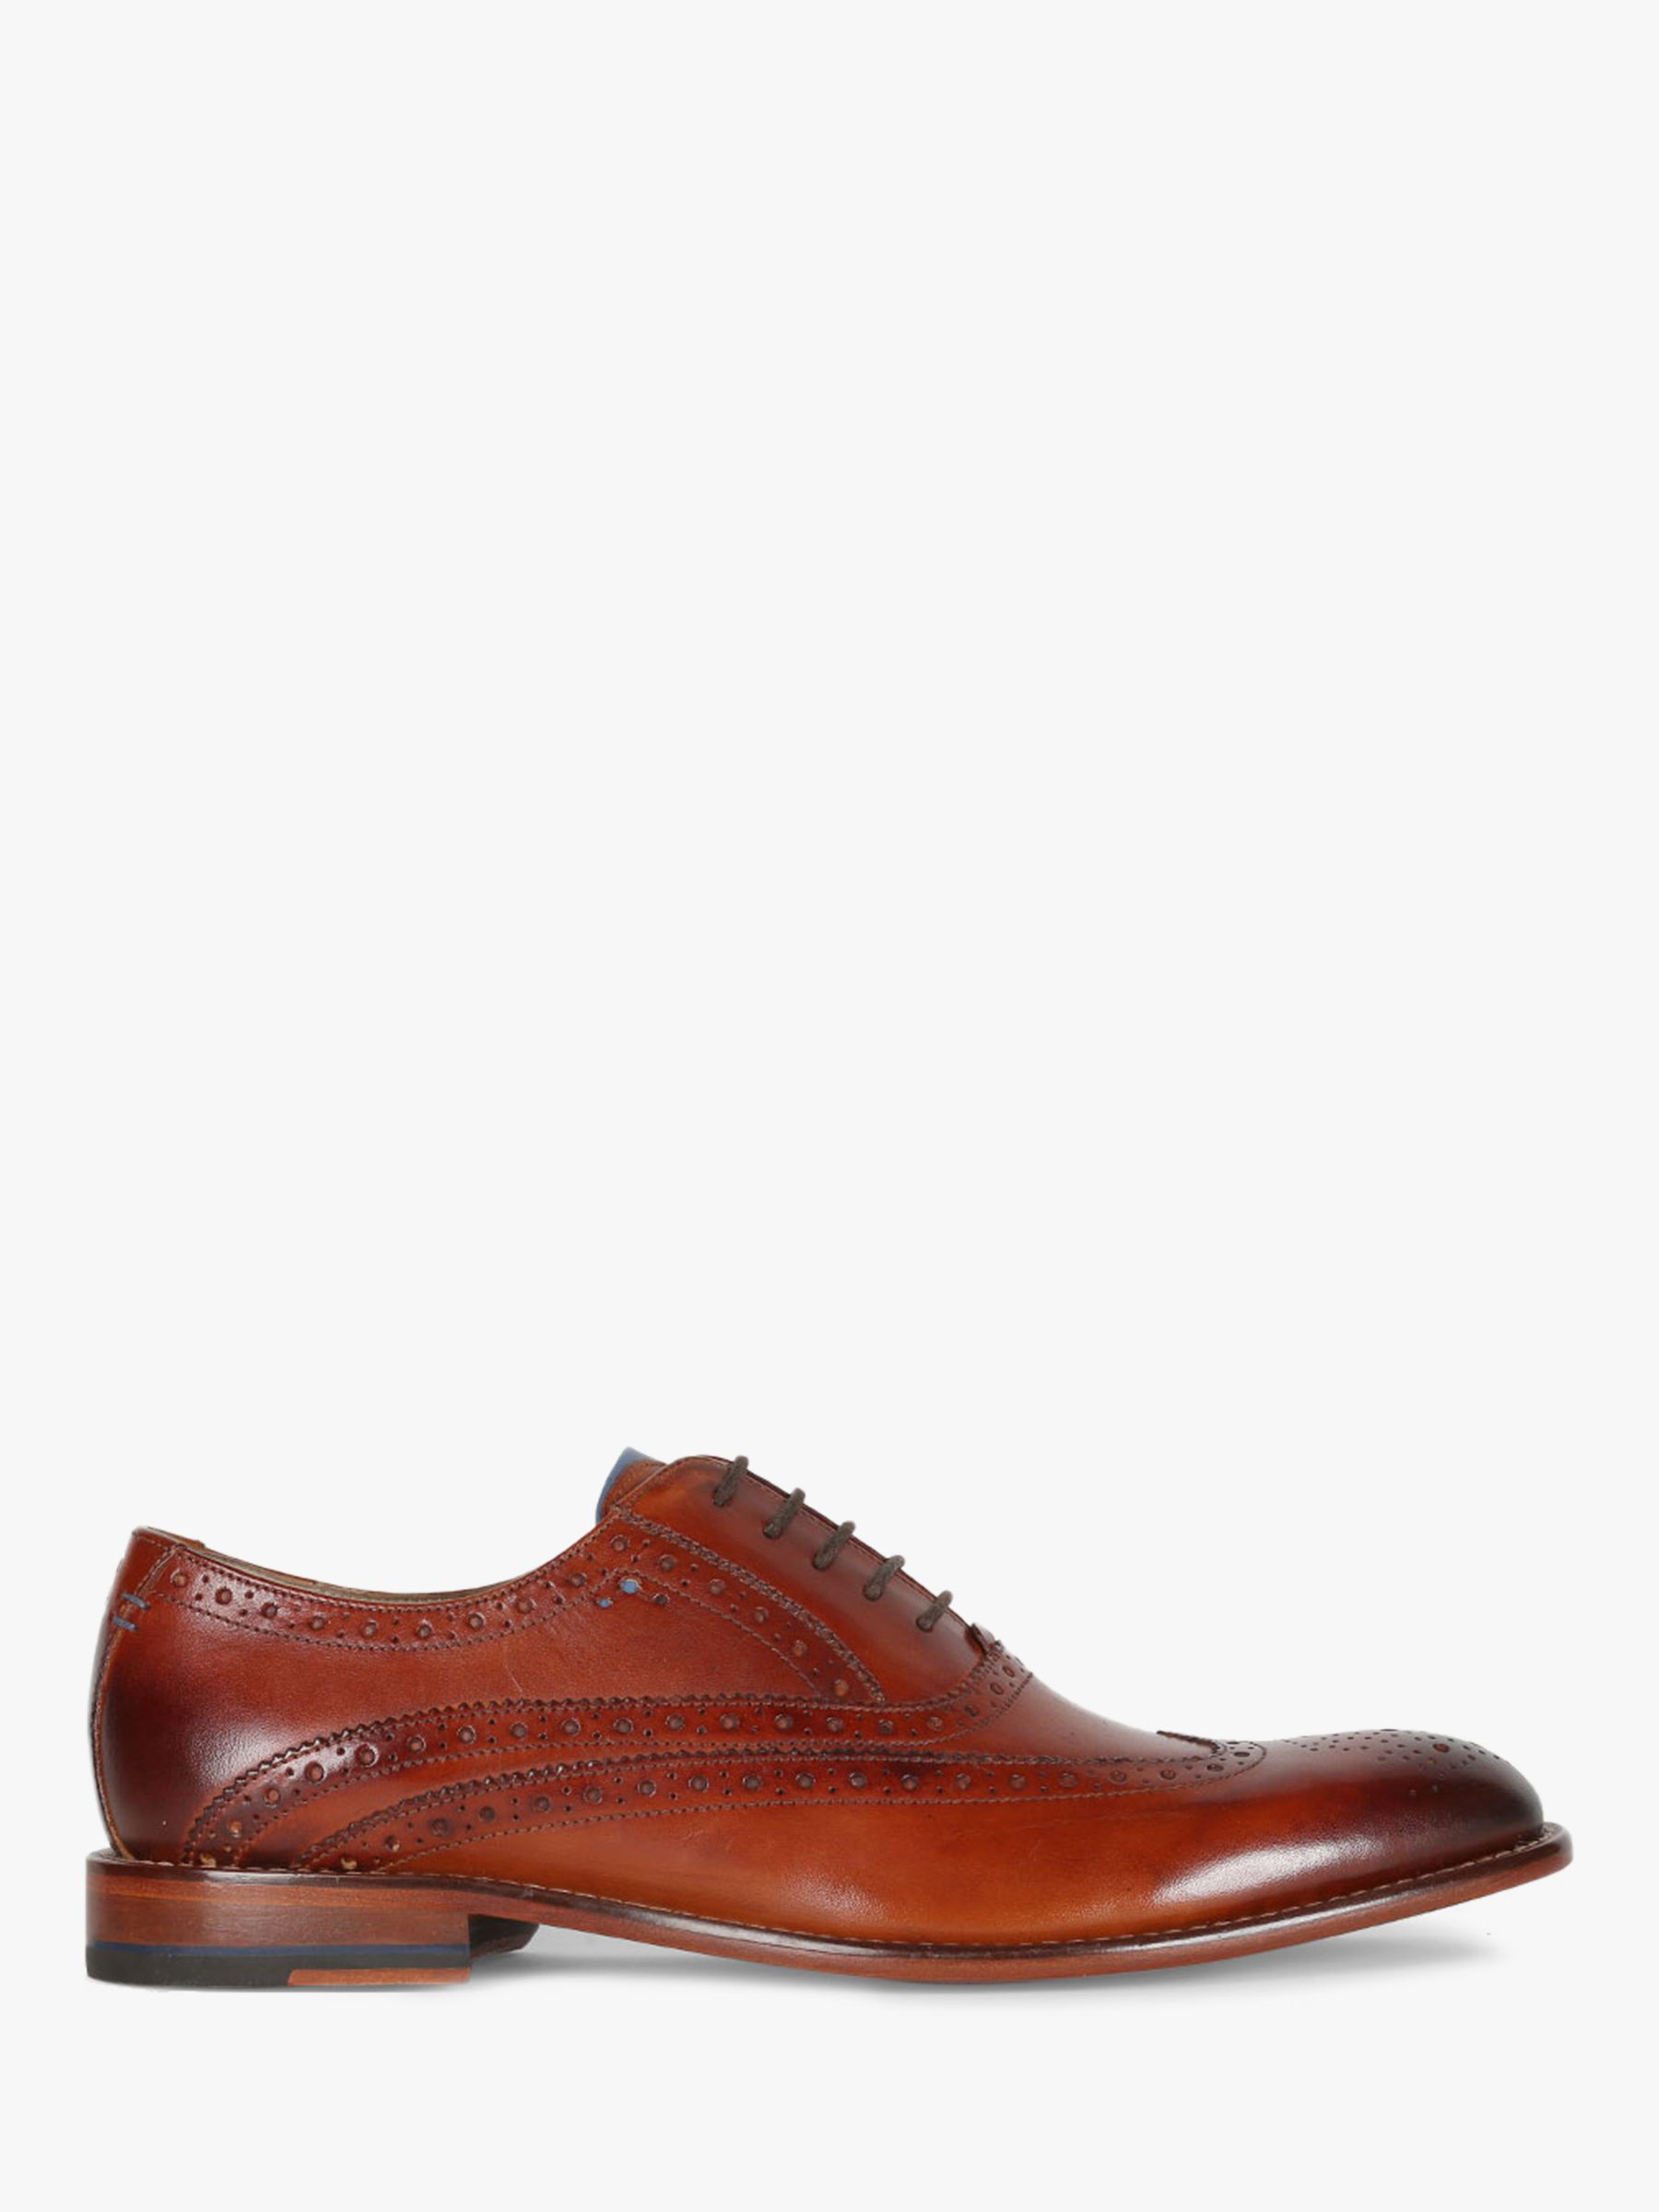 Oliver Sweeney Oliver Sweeney Fellbeck Leather Brogues, Chestnut